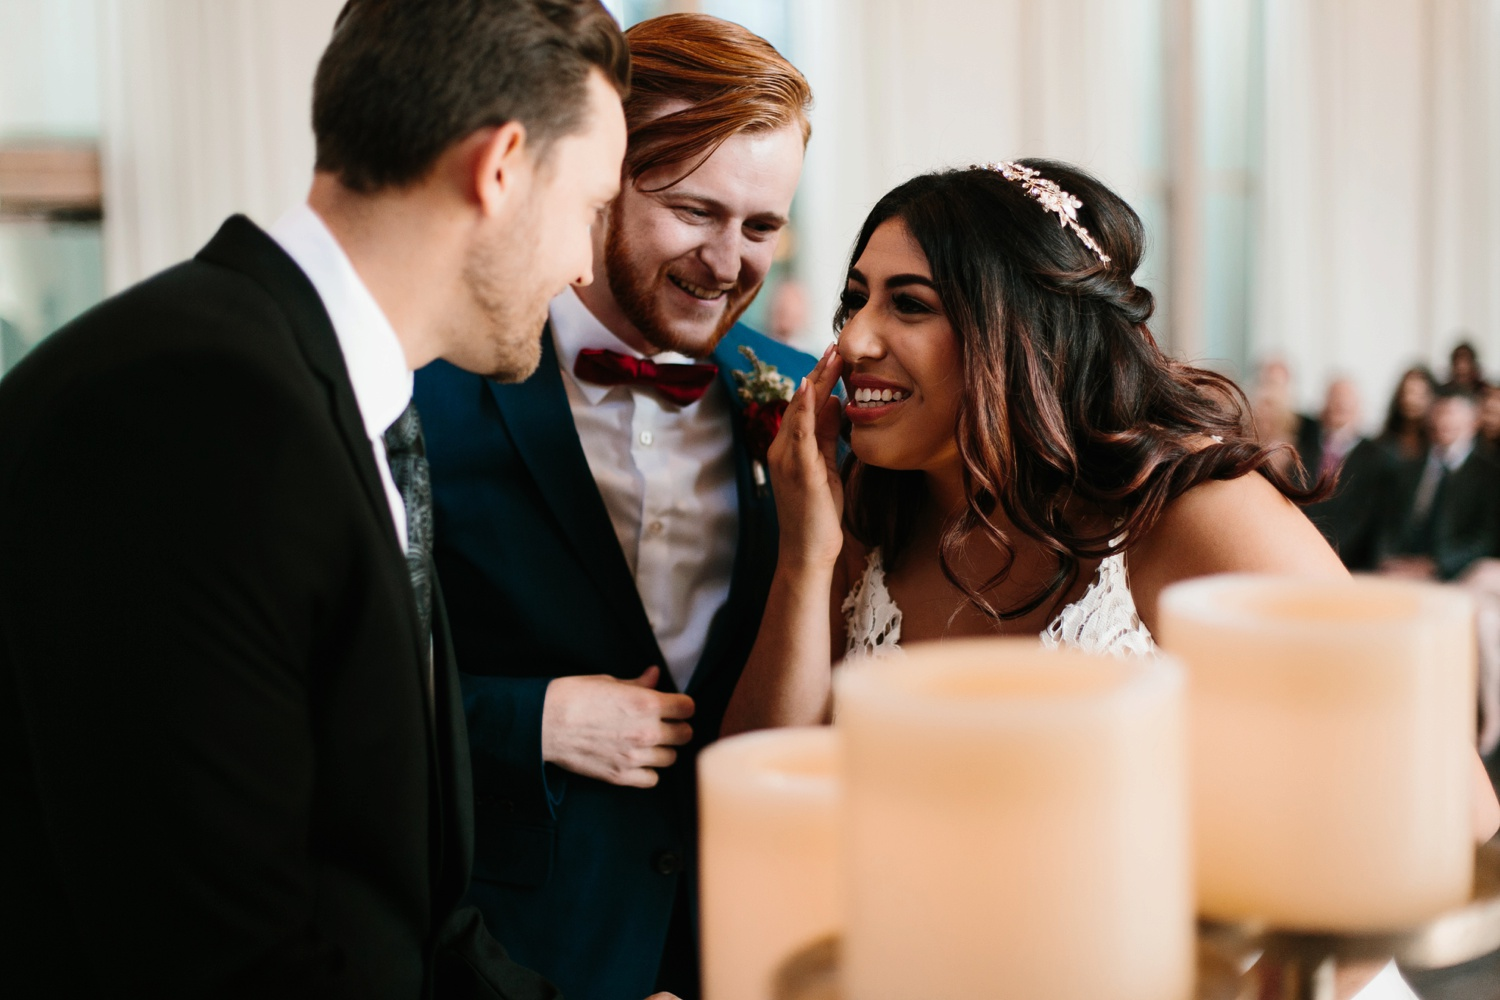 Grant + Lysette | a vibrant, deep burgundy and navy, and mixed metals wedding at Hidden Pines Chapel by North Texas Wedding Photographer Rachel Meagan Photography 095